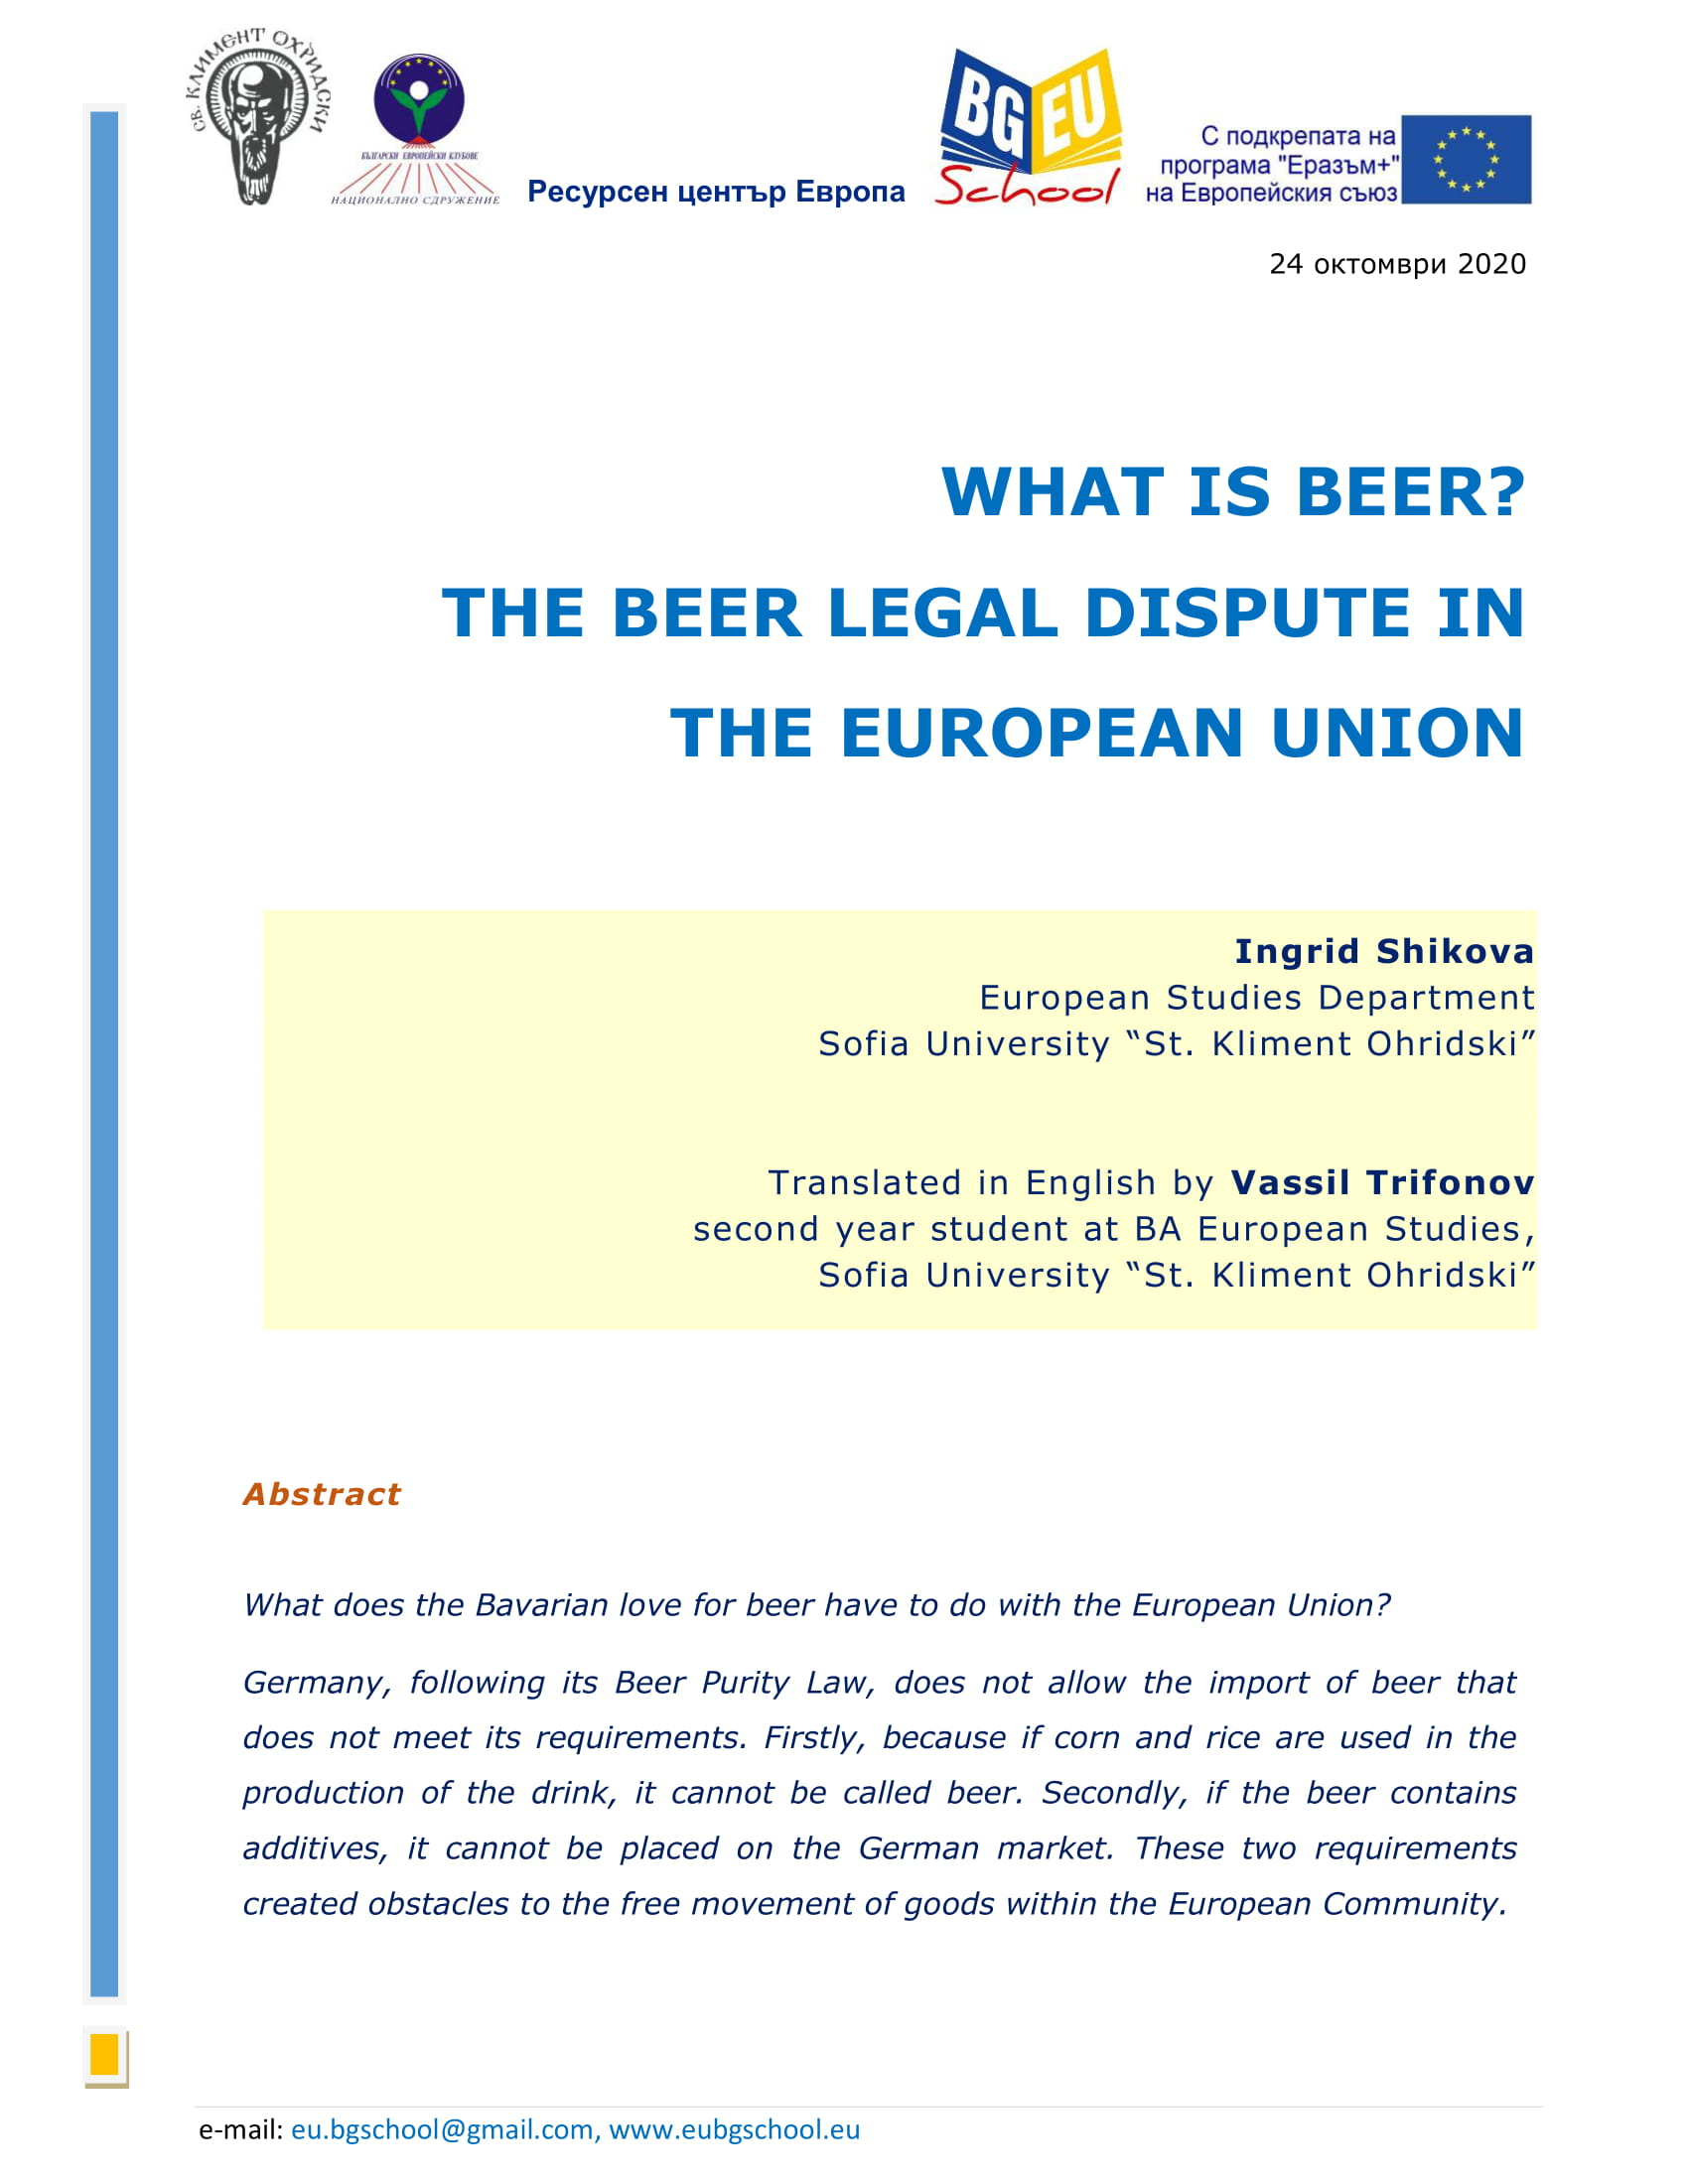 WHAT IS BEER? THE BEER LEGAL DISPUTE IN  THE EUROPEAN UNION